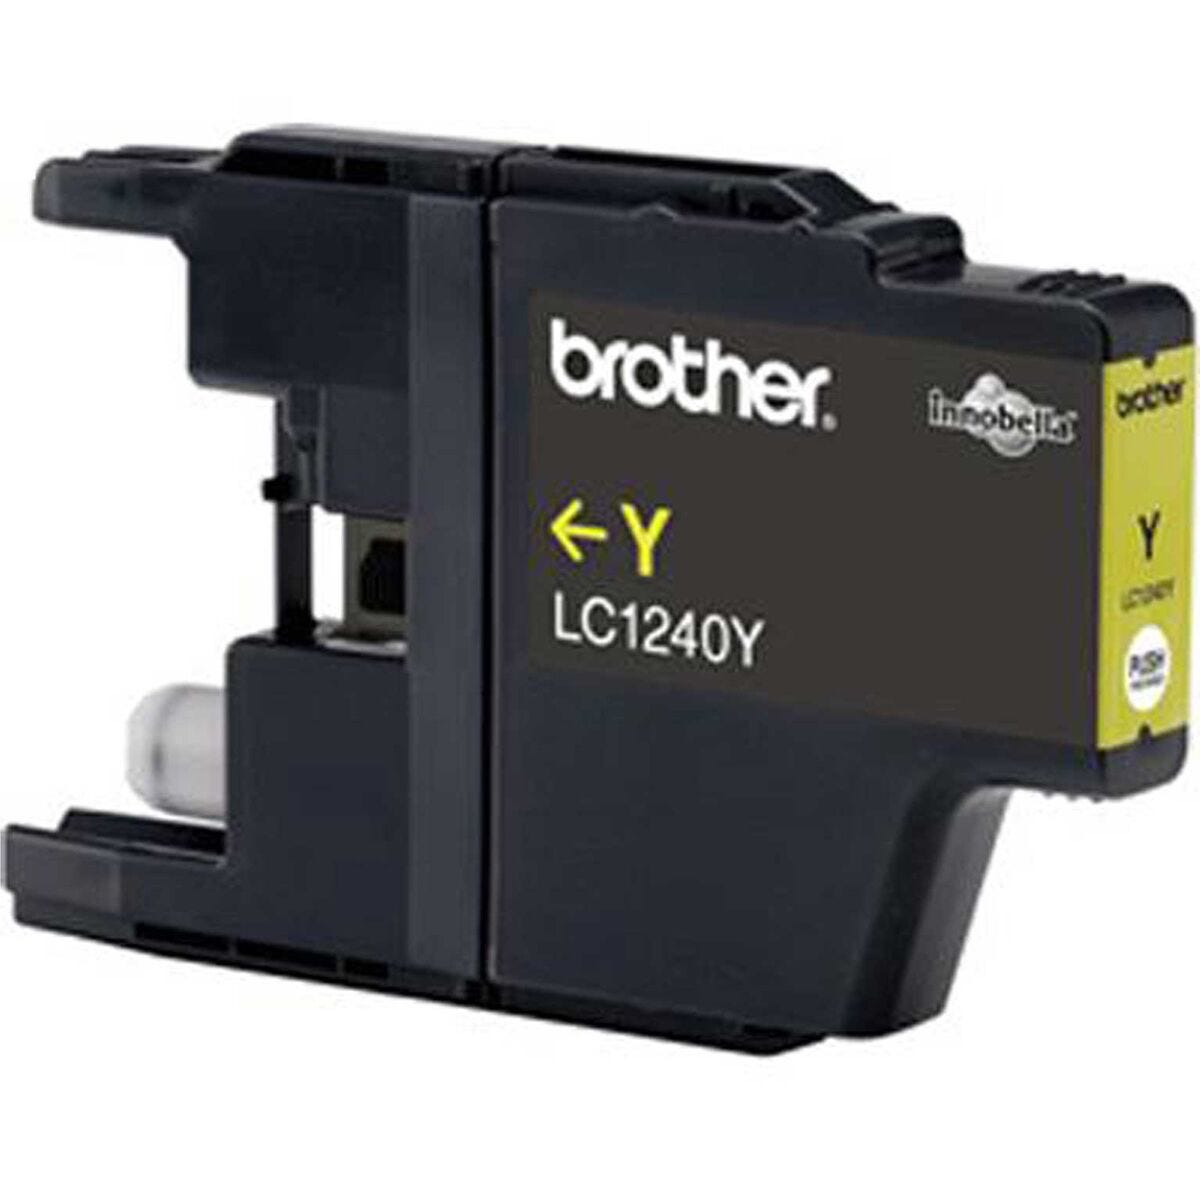 Brother LC1240Y Ink Cartridge